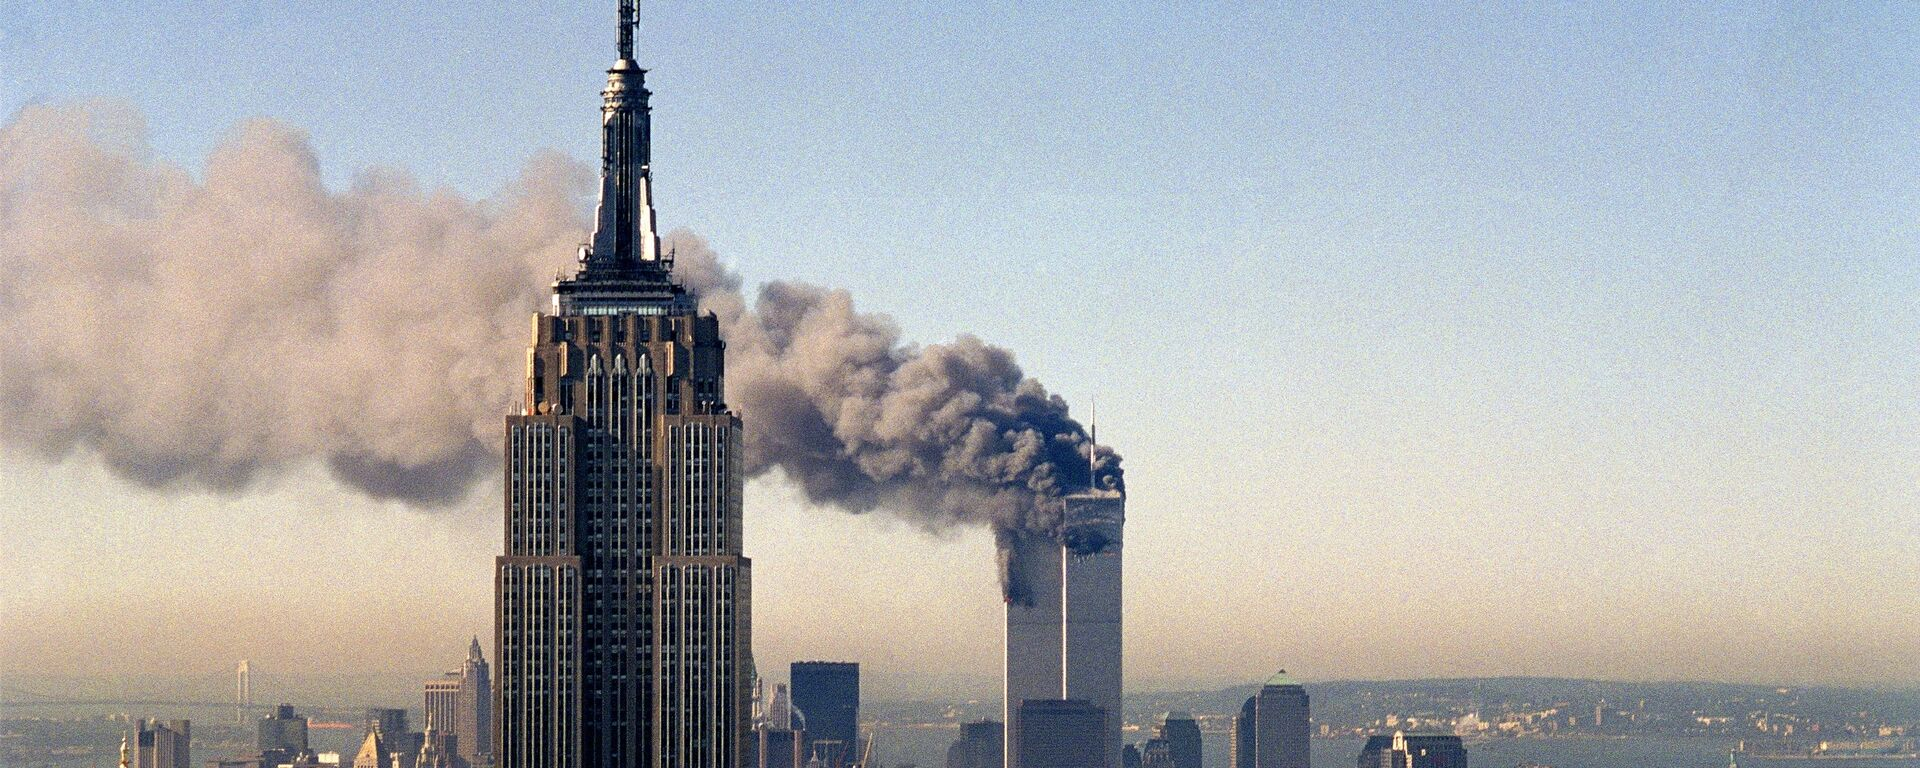 In this Sept. 11, 2001, file photo, the twin towers of the World Trade Center burn behind the Empire State Building in New York. - Sputnik International, 1920, 10.09.2021